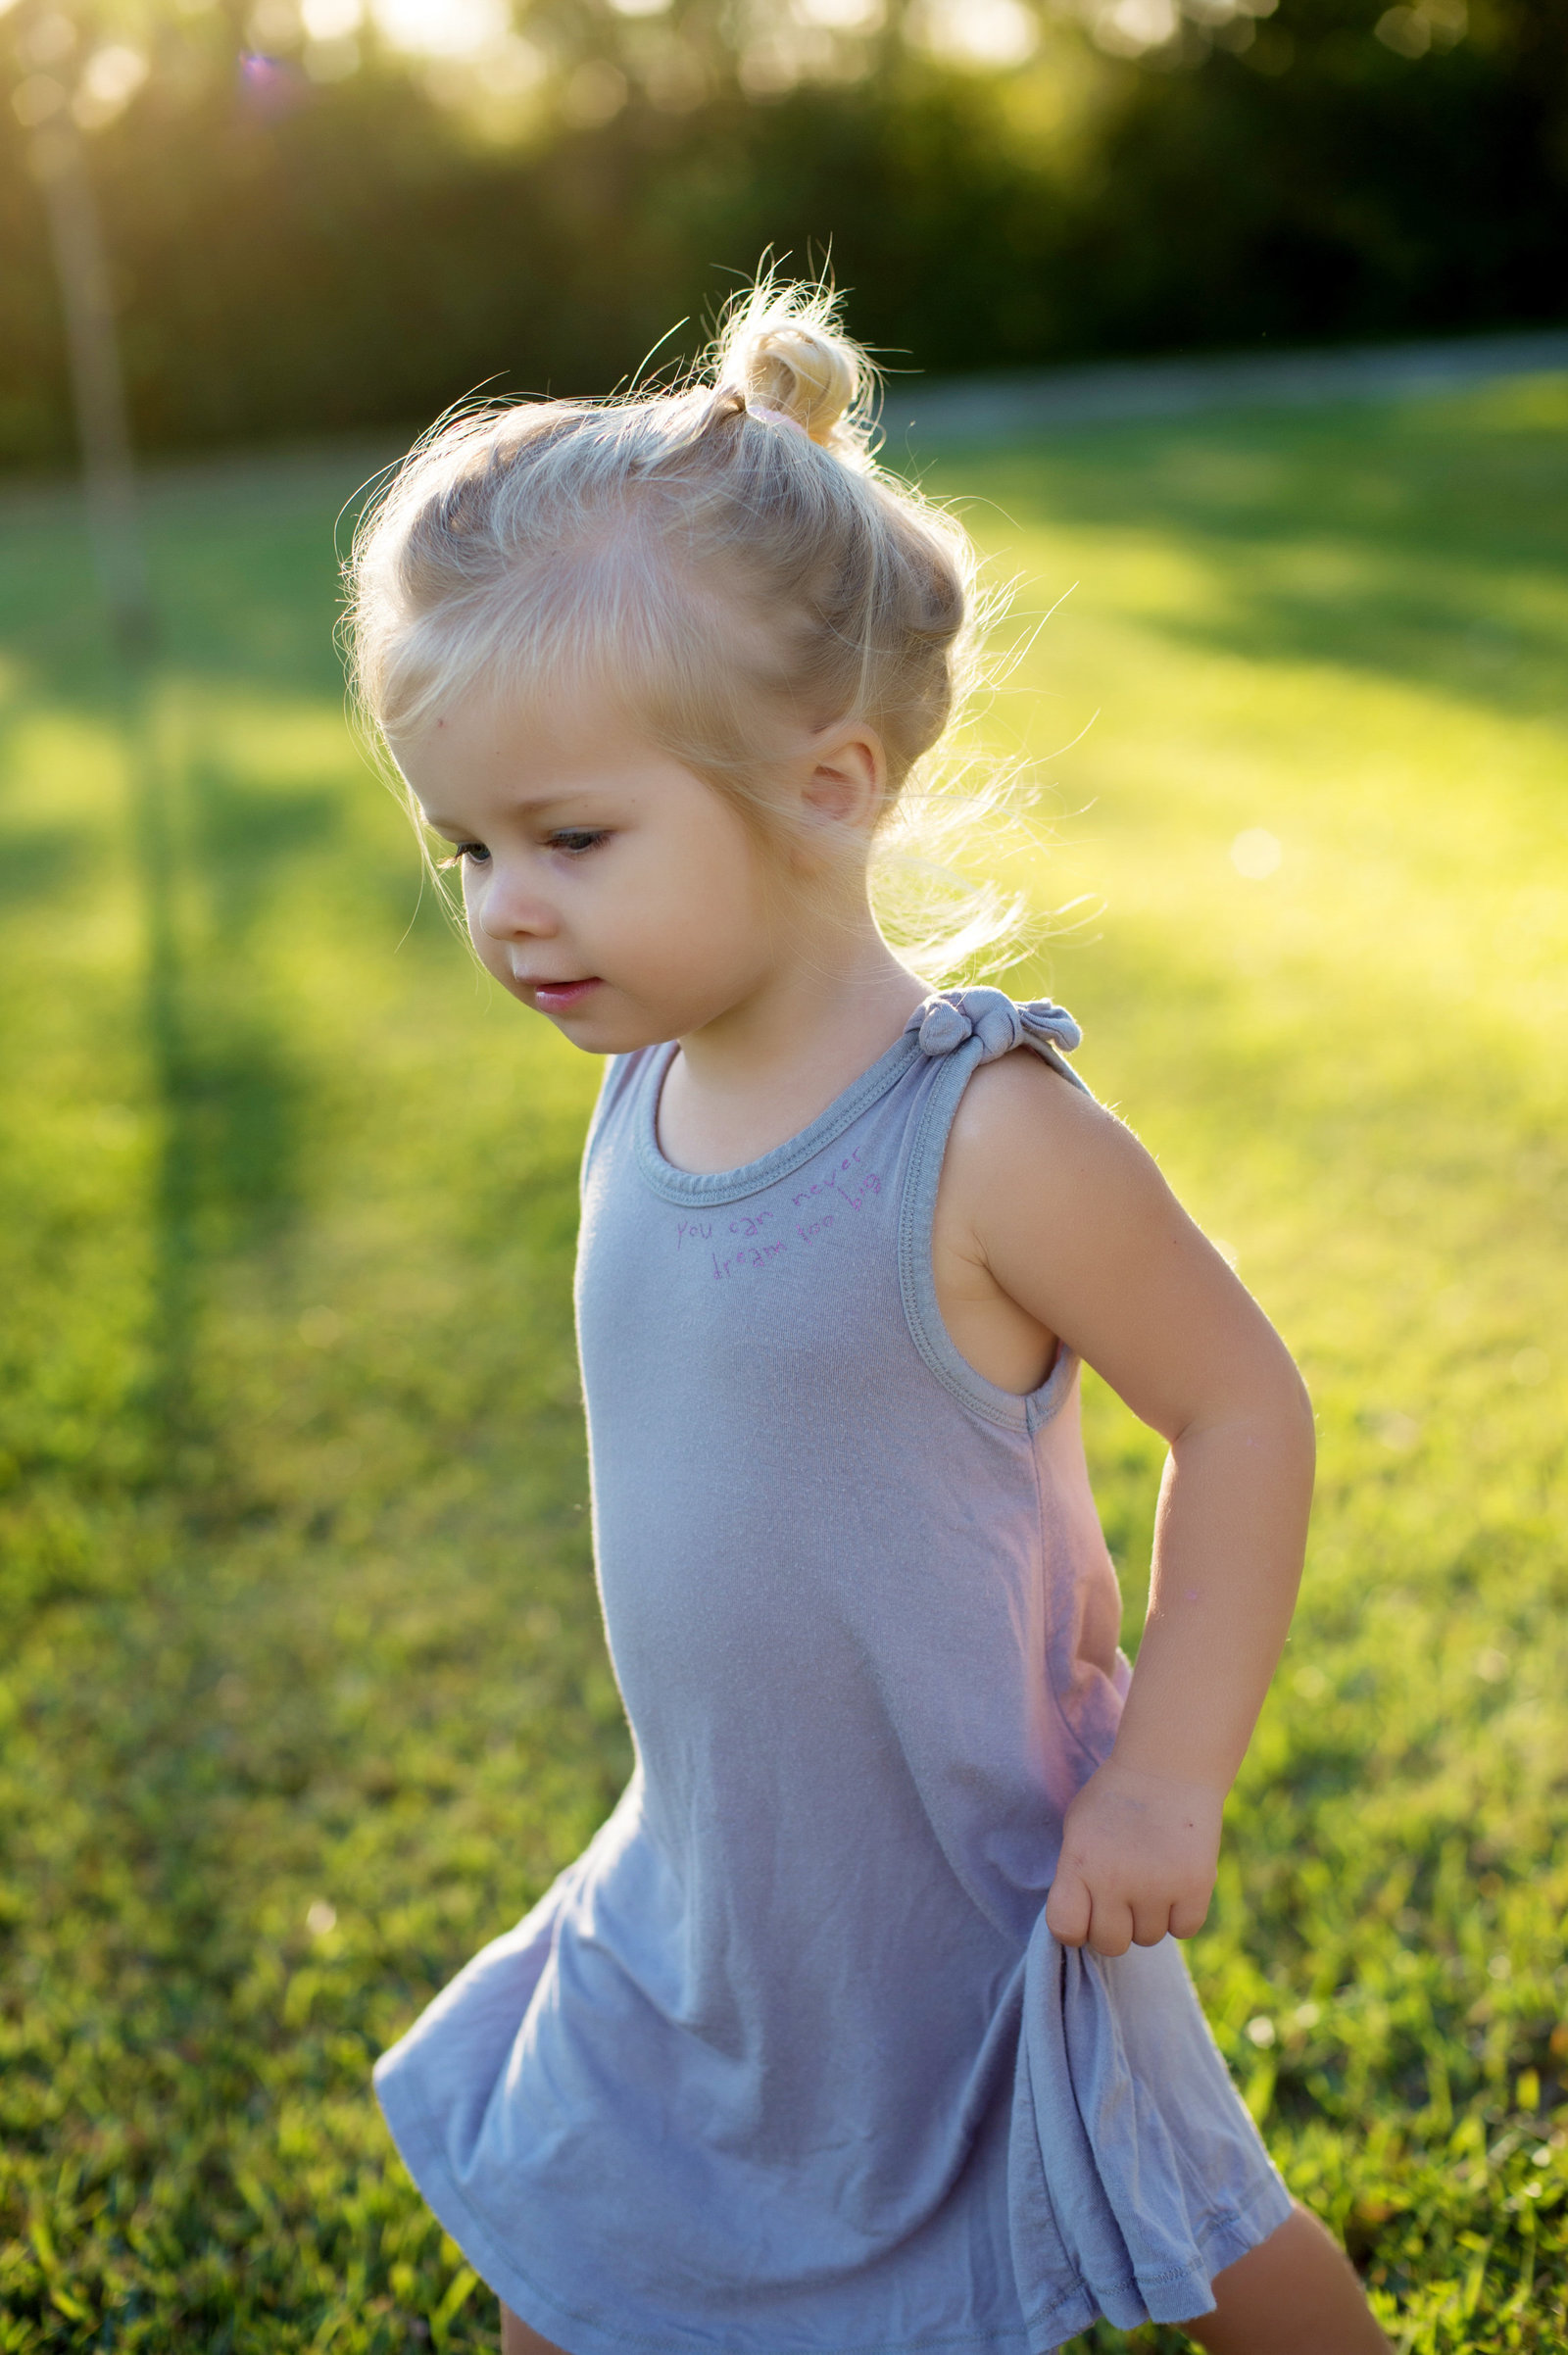 a blonde haired girl walks through the grass holding her dress